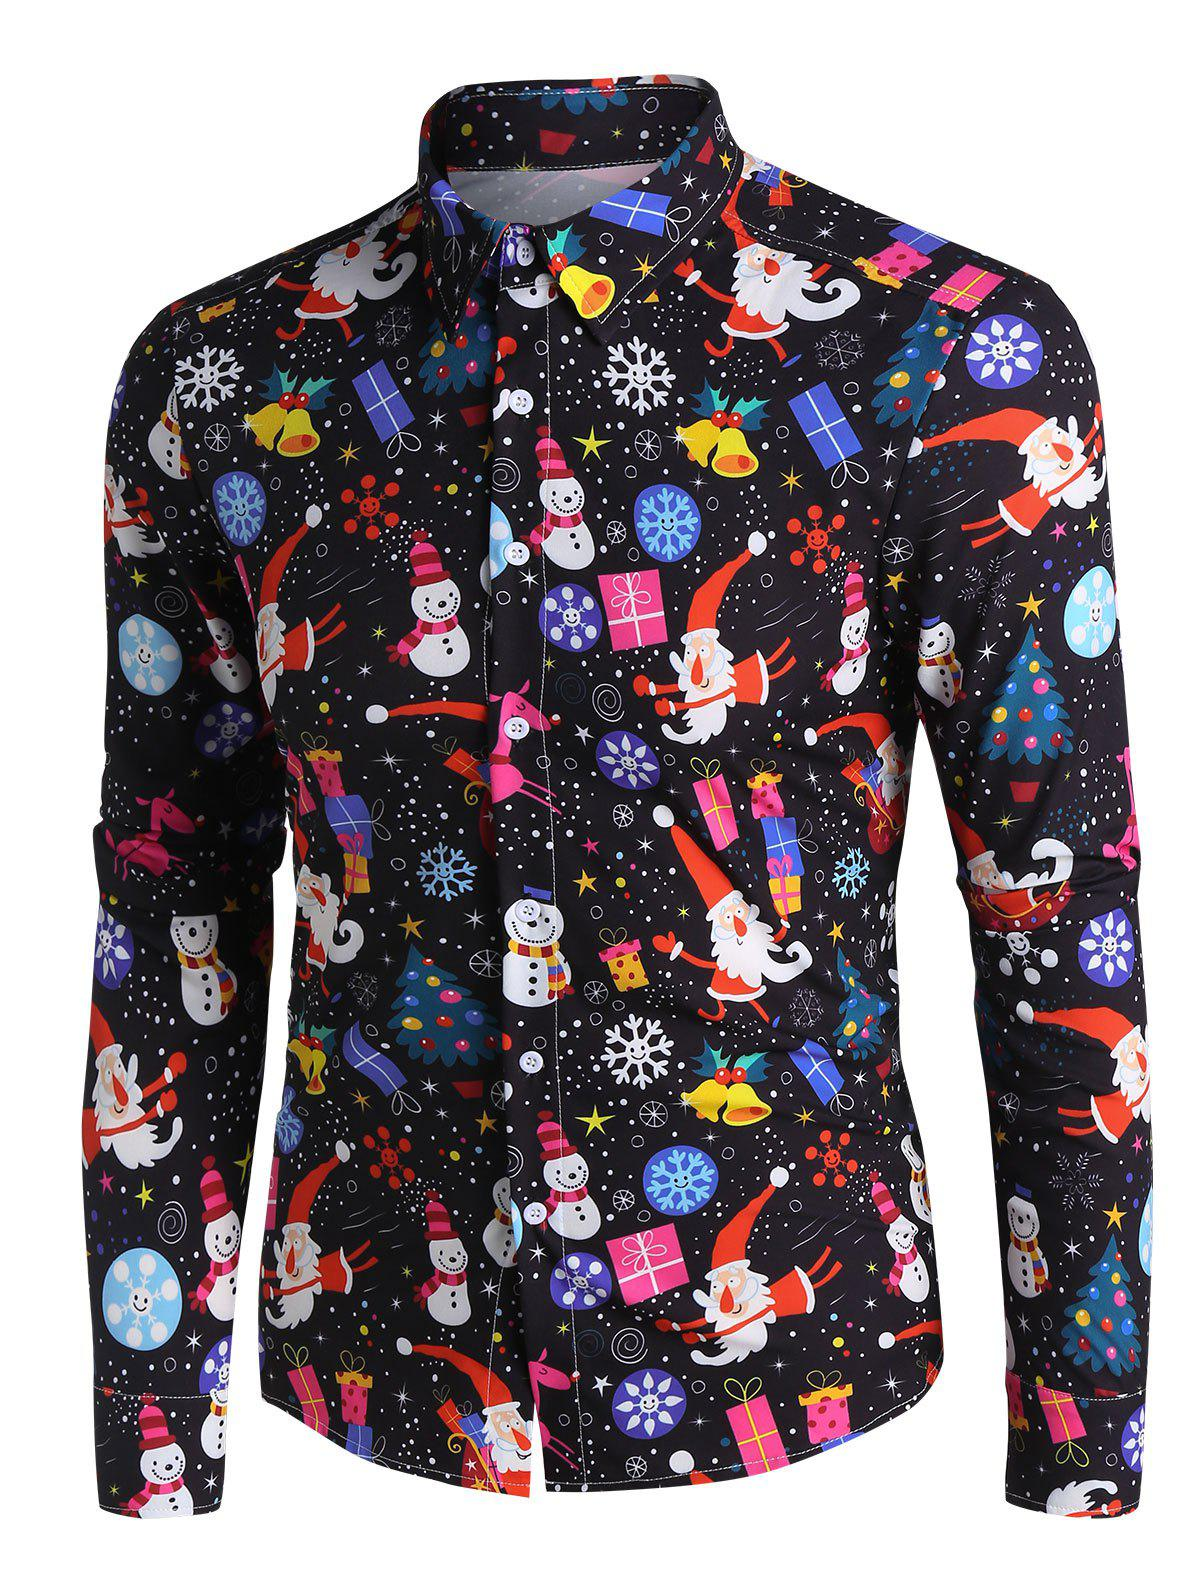 Sale Christmas Santa Claus and Snowman Print Button Up Long Sleeve Shirt